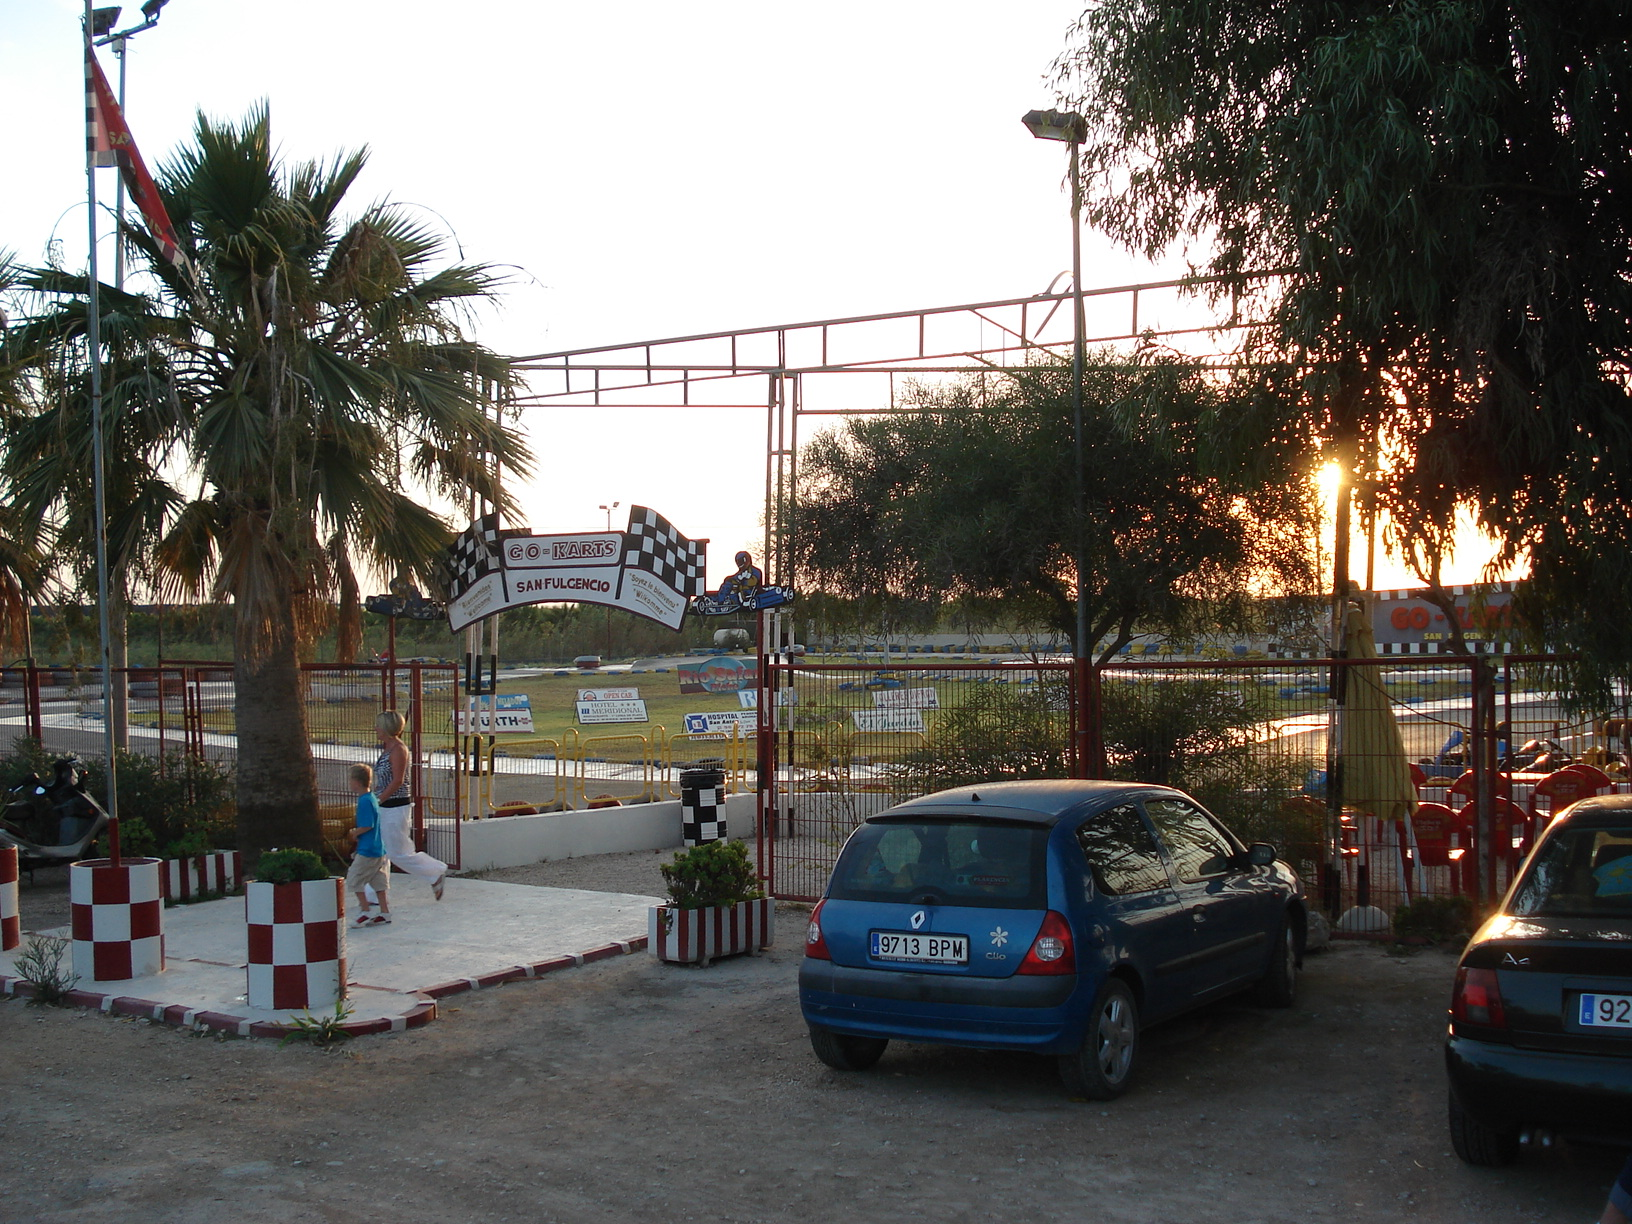 guardamar kart Go Karts San Fulgencio just off the N 332 near La Marina | Spain Info